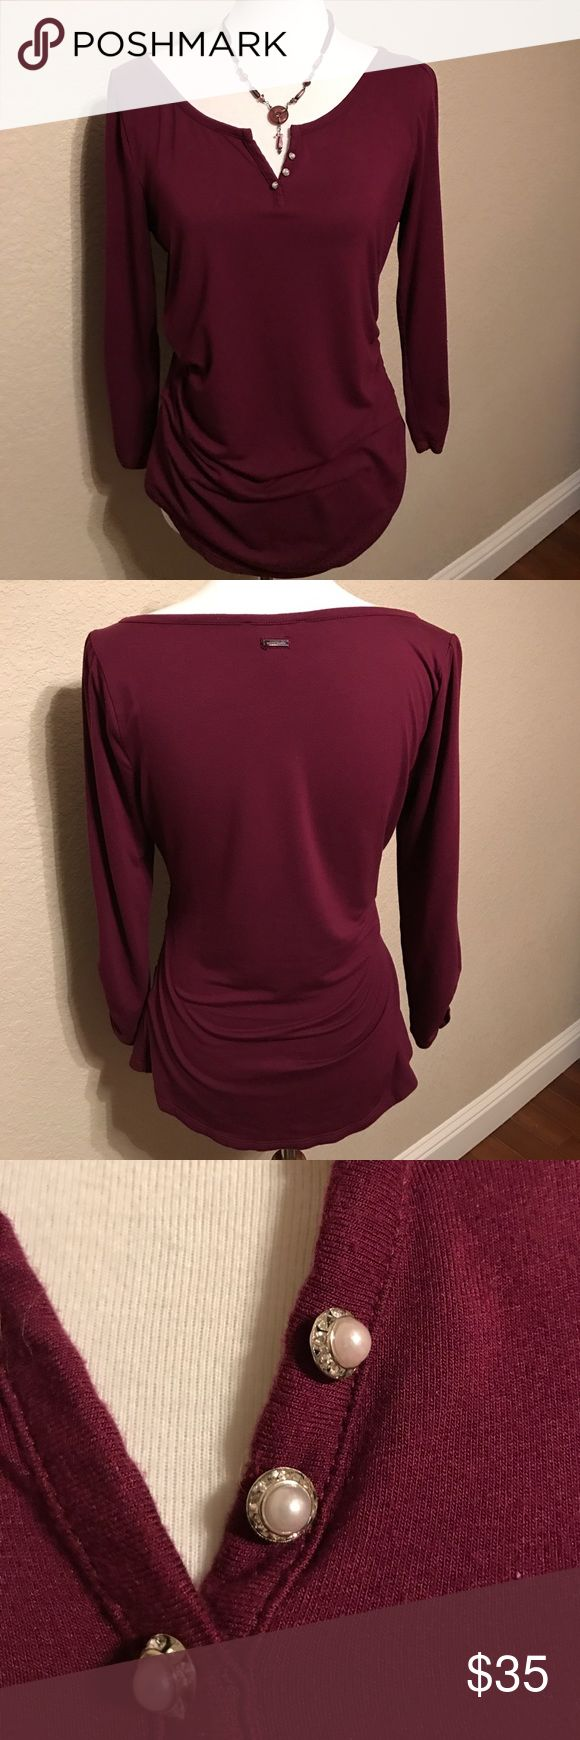 WHBM Cranberry Sophisticated Tee White House Black Market cranberry casual tee, with more sophisticated details. 3/4 sleeve. Pearl and rhinestone false buttons. Super soft fabric. Fits true to size. White House Black Market Tops